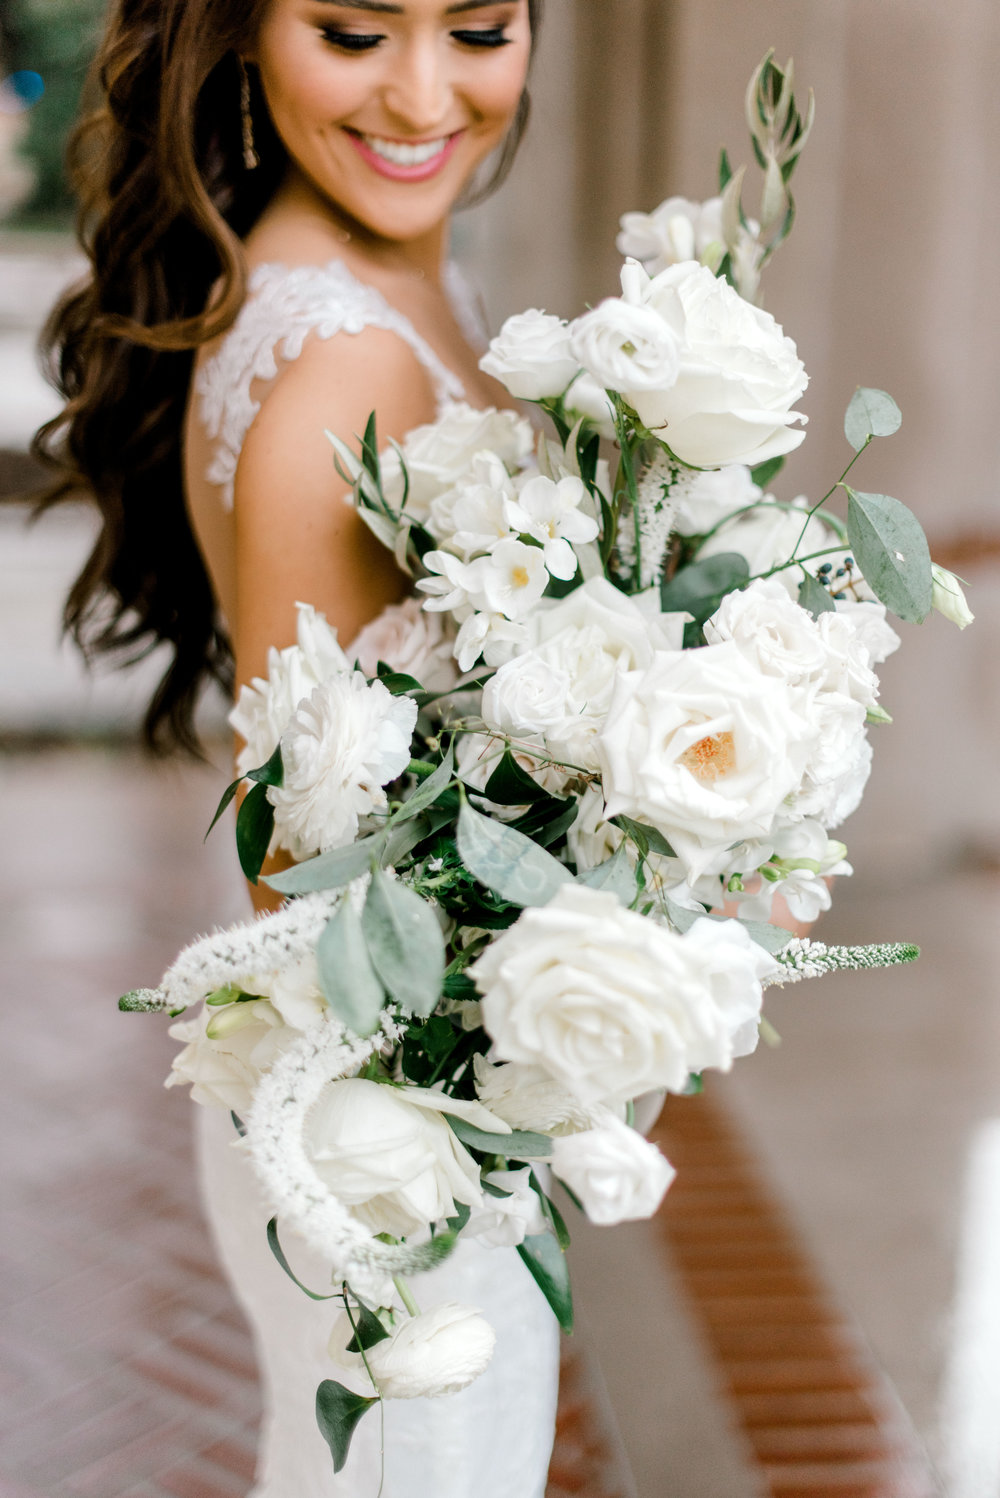 wedding-details-photography-dana-fernandez-bride-bridal-bouquet-Freesia-Lisianthus-Veronica-peony-floral-greenery-by-maxit-flower-design-houston-texas